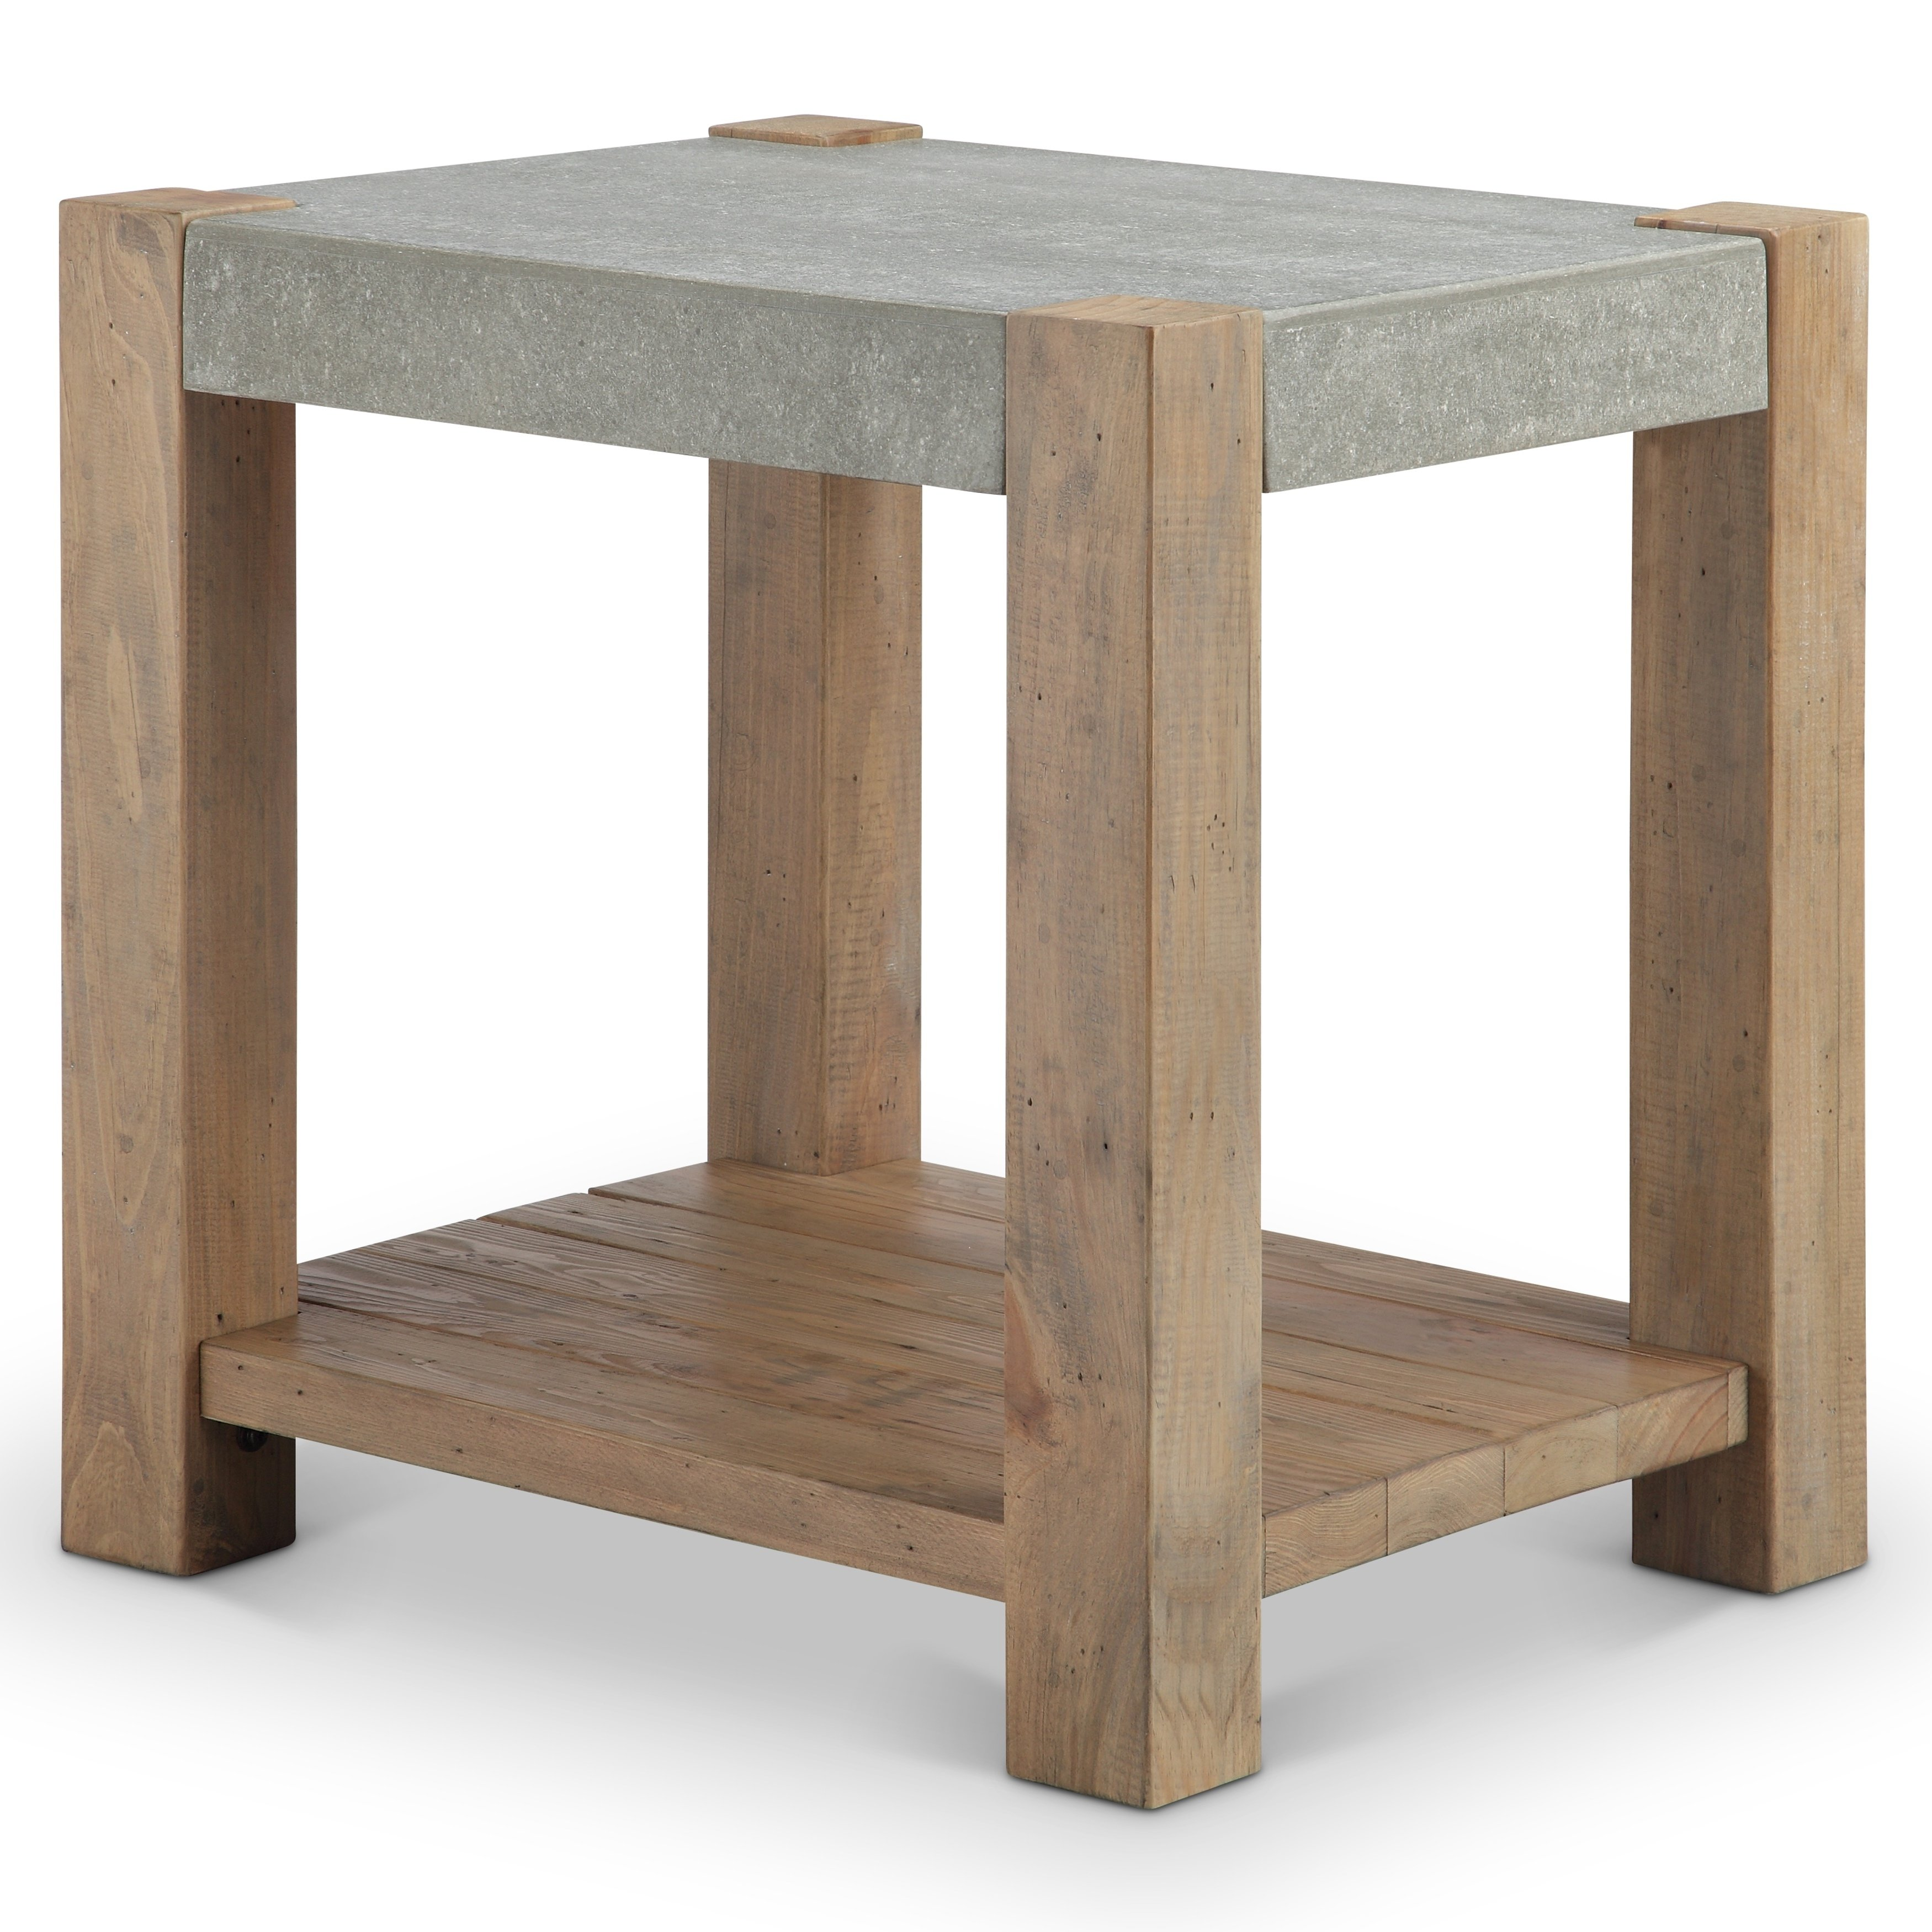 donovan rustic honey wheat reclaimed rectangular end table room essentials trestle accent free shipping today teal bedside lamps contemporary dining concrete look ikea box storage